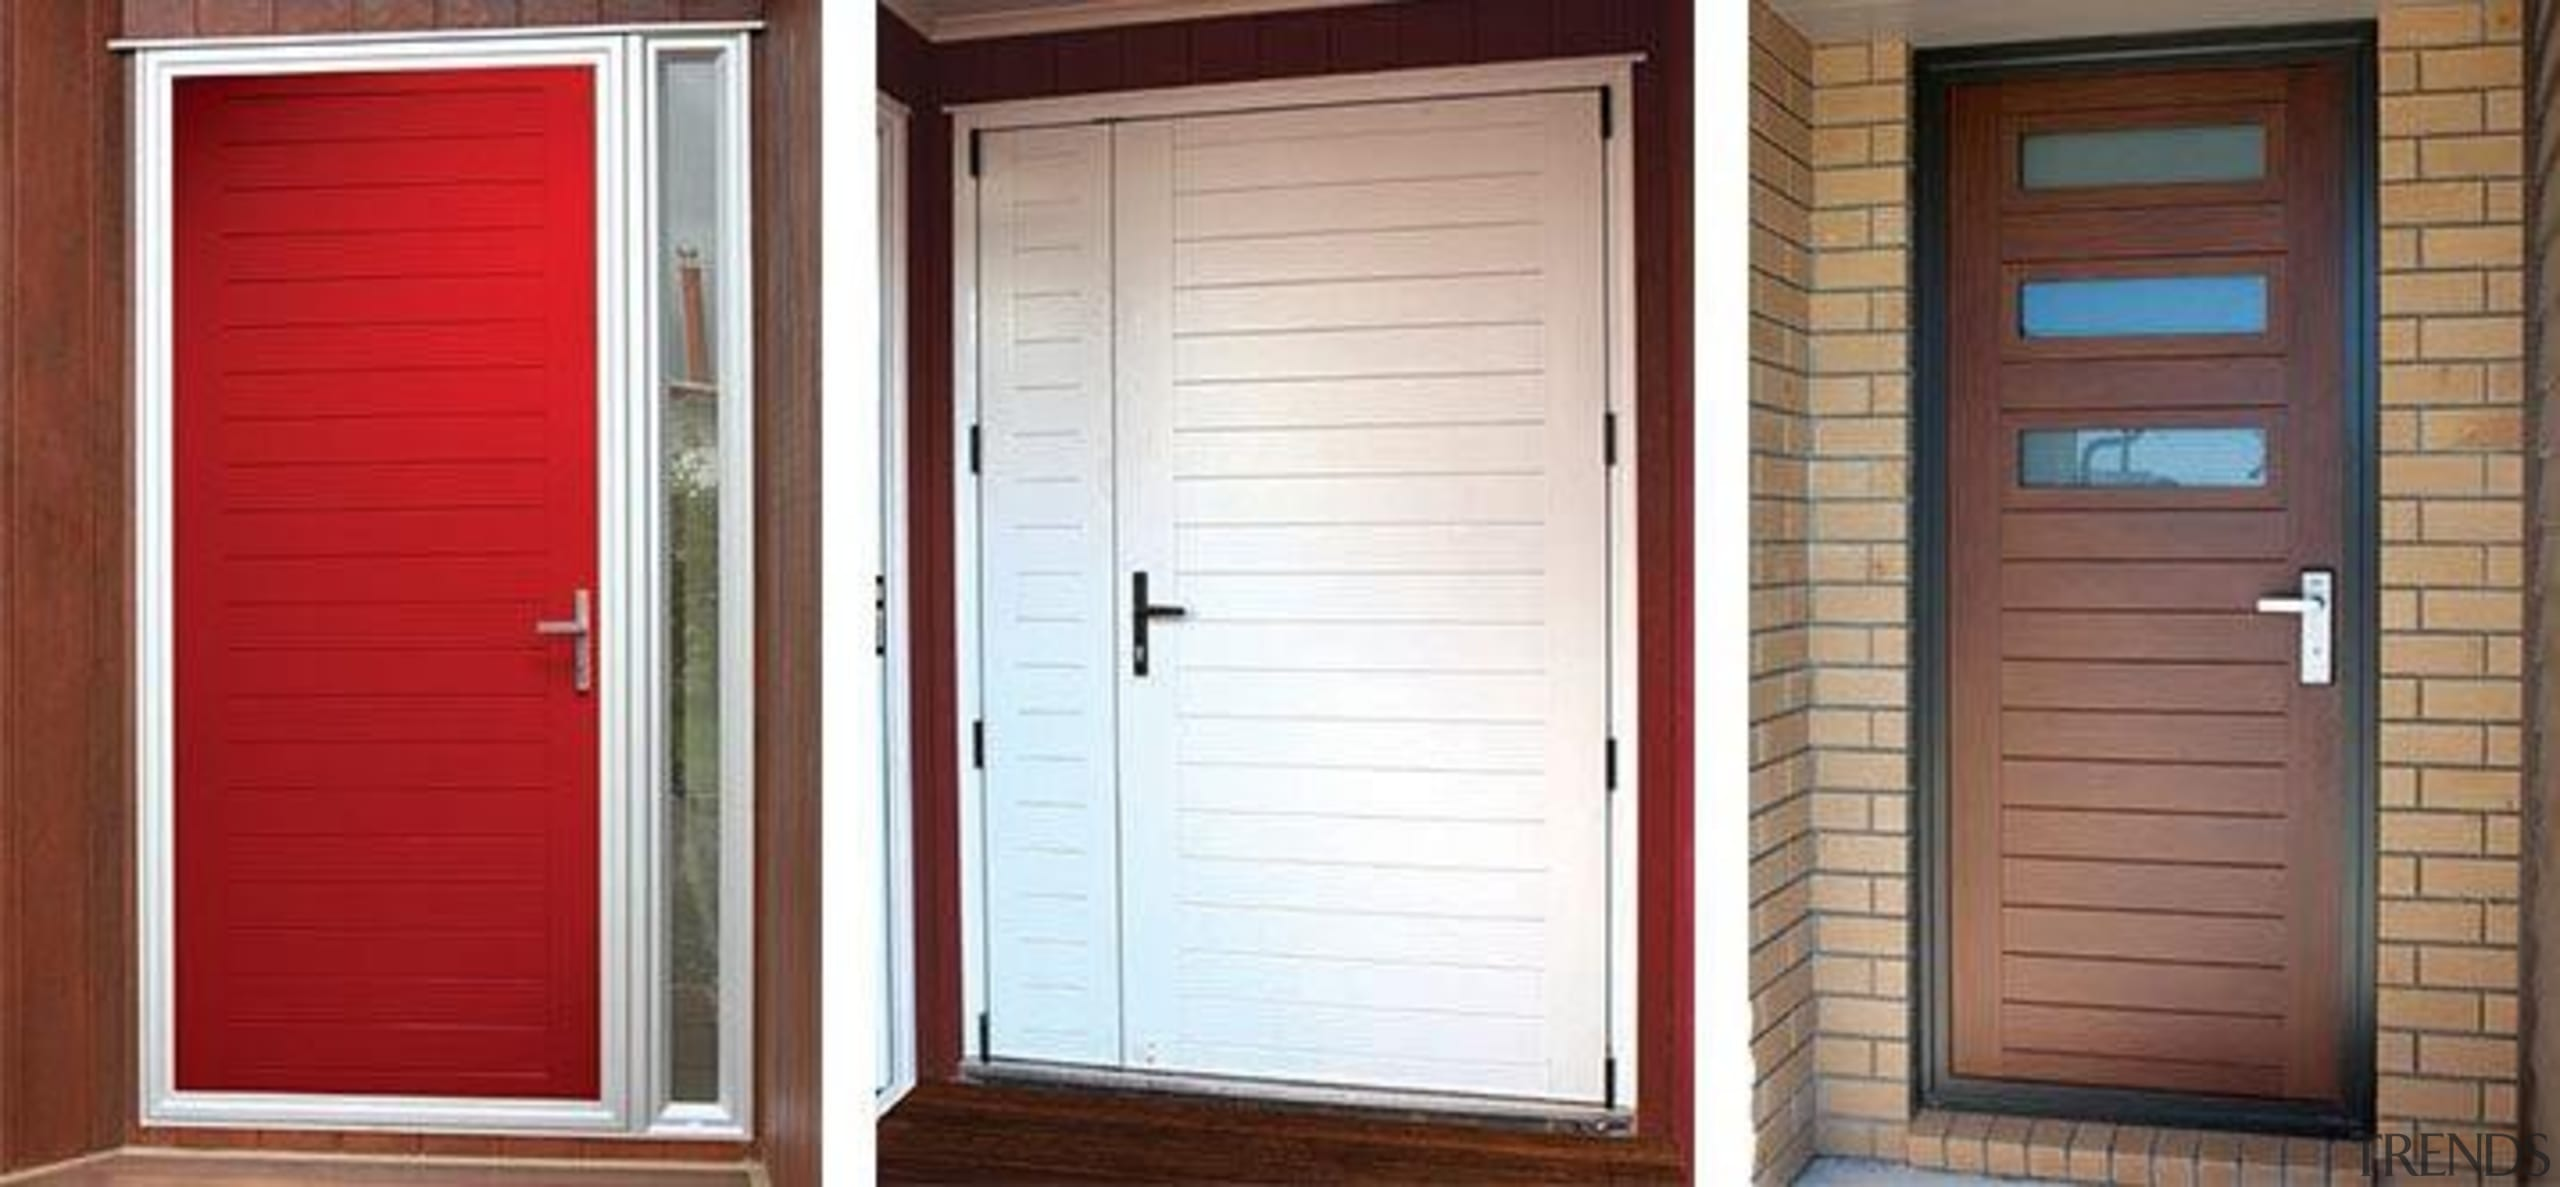 FIRST® Aquila entrance doors offer an innovative door door, window, window blind, window covering, window treatment, wood, wood stain, white, red